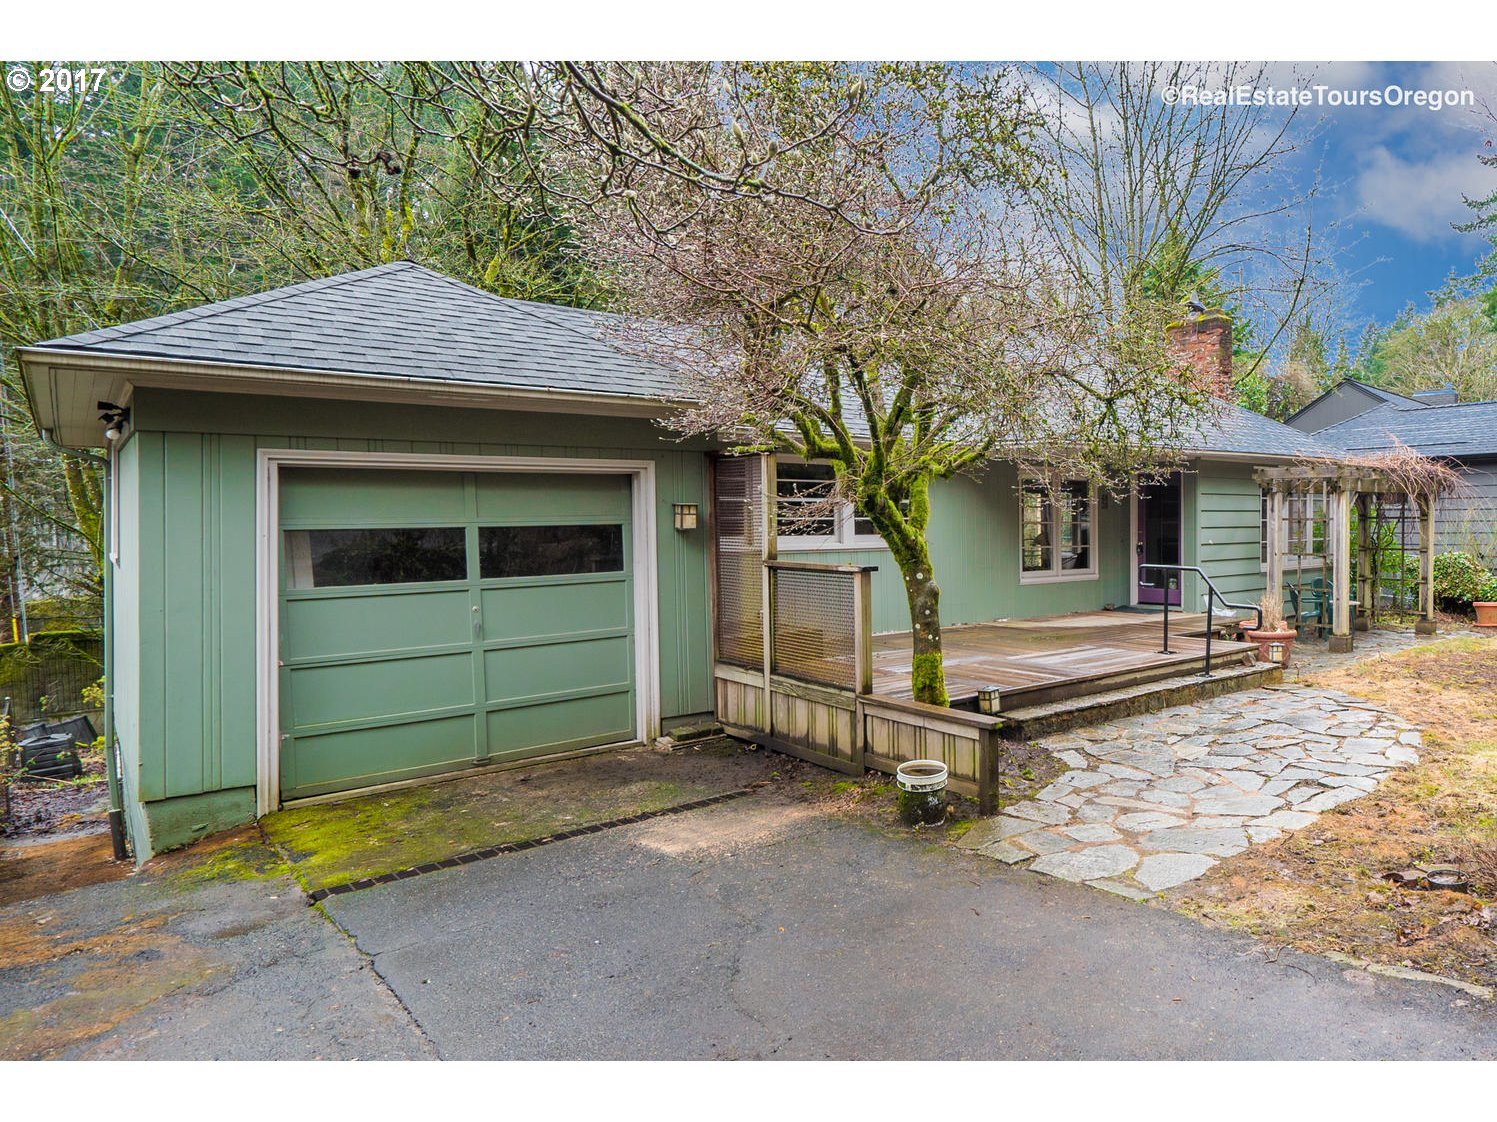 1976 sq. ft 2 bedrooms 1 bathrooms  House For Sale,Portland, OR